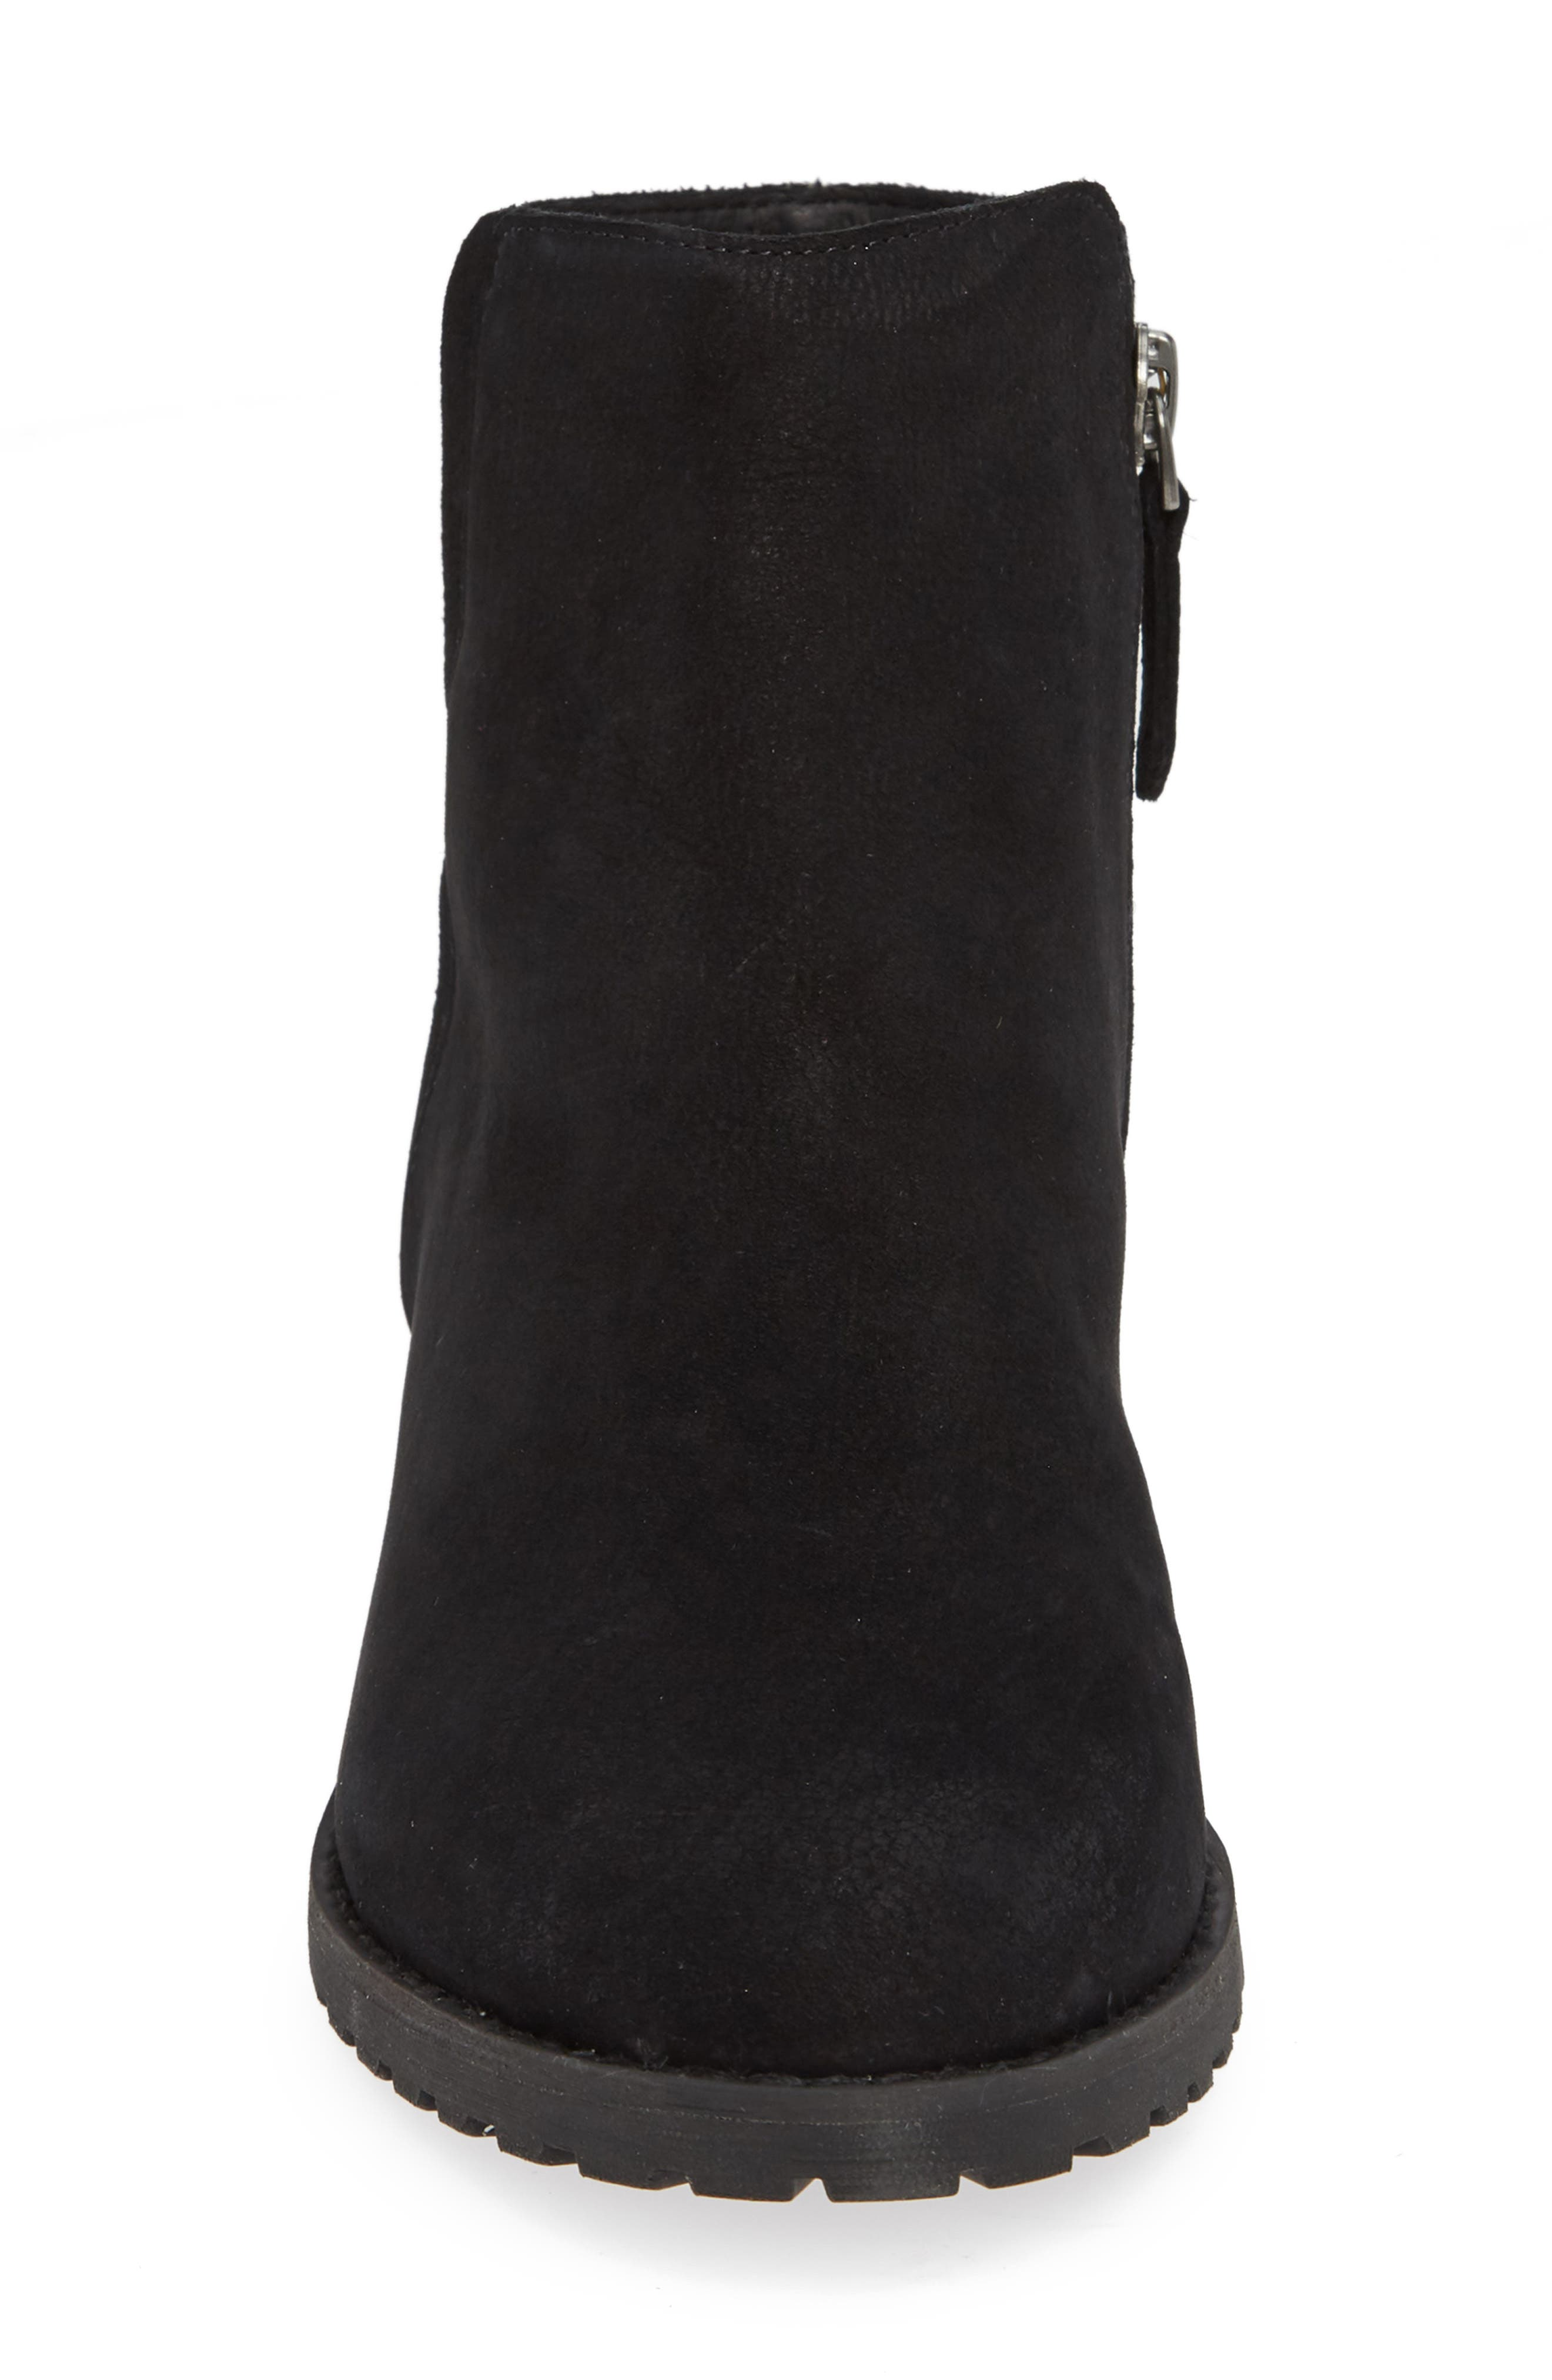 Ollie Water Resistant Bootie,                             Alternate thumbnail 4, color,                             BLACK OILED NUBUCK